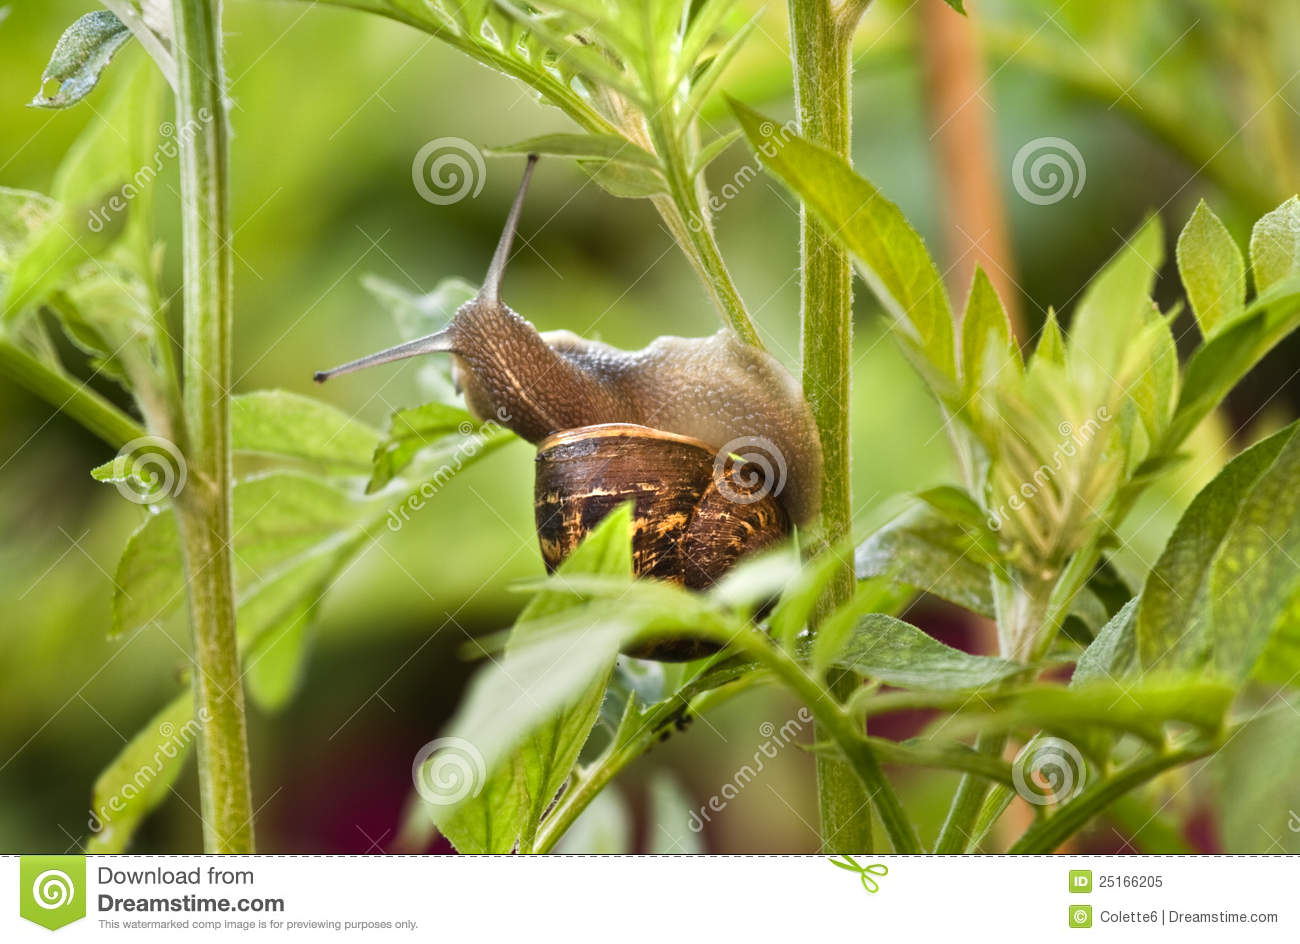 Caracol que come as folhas e planta prejudicial foto de for Caracol de jardin que come